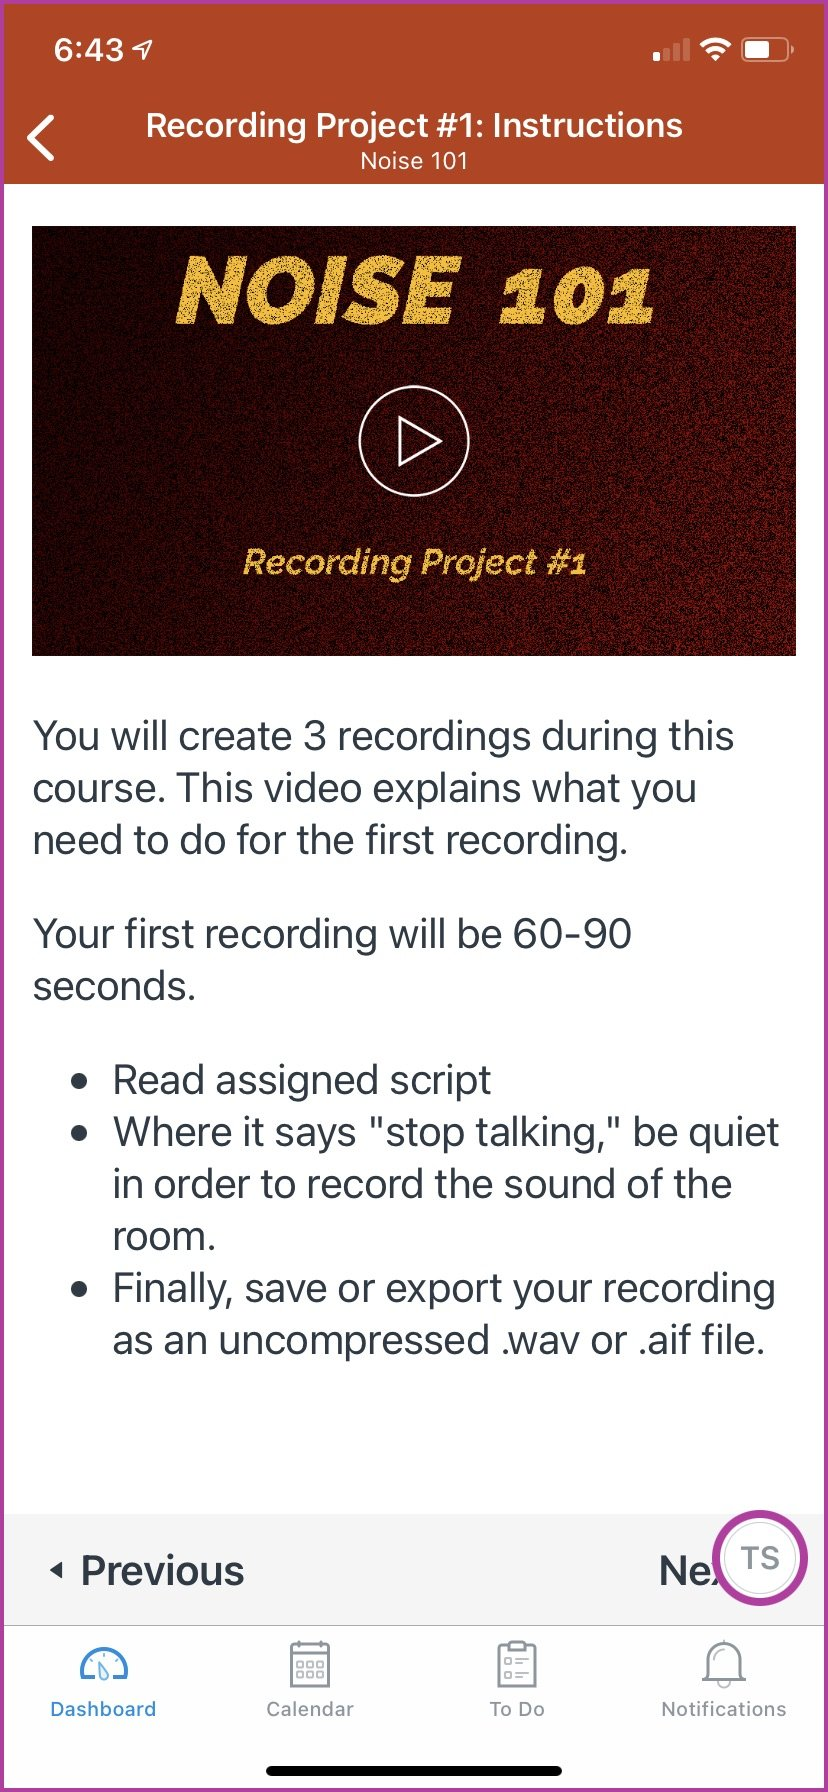 Example of Project #1 in the Noise 101 course. This video will give students the instructions they need to get started.